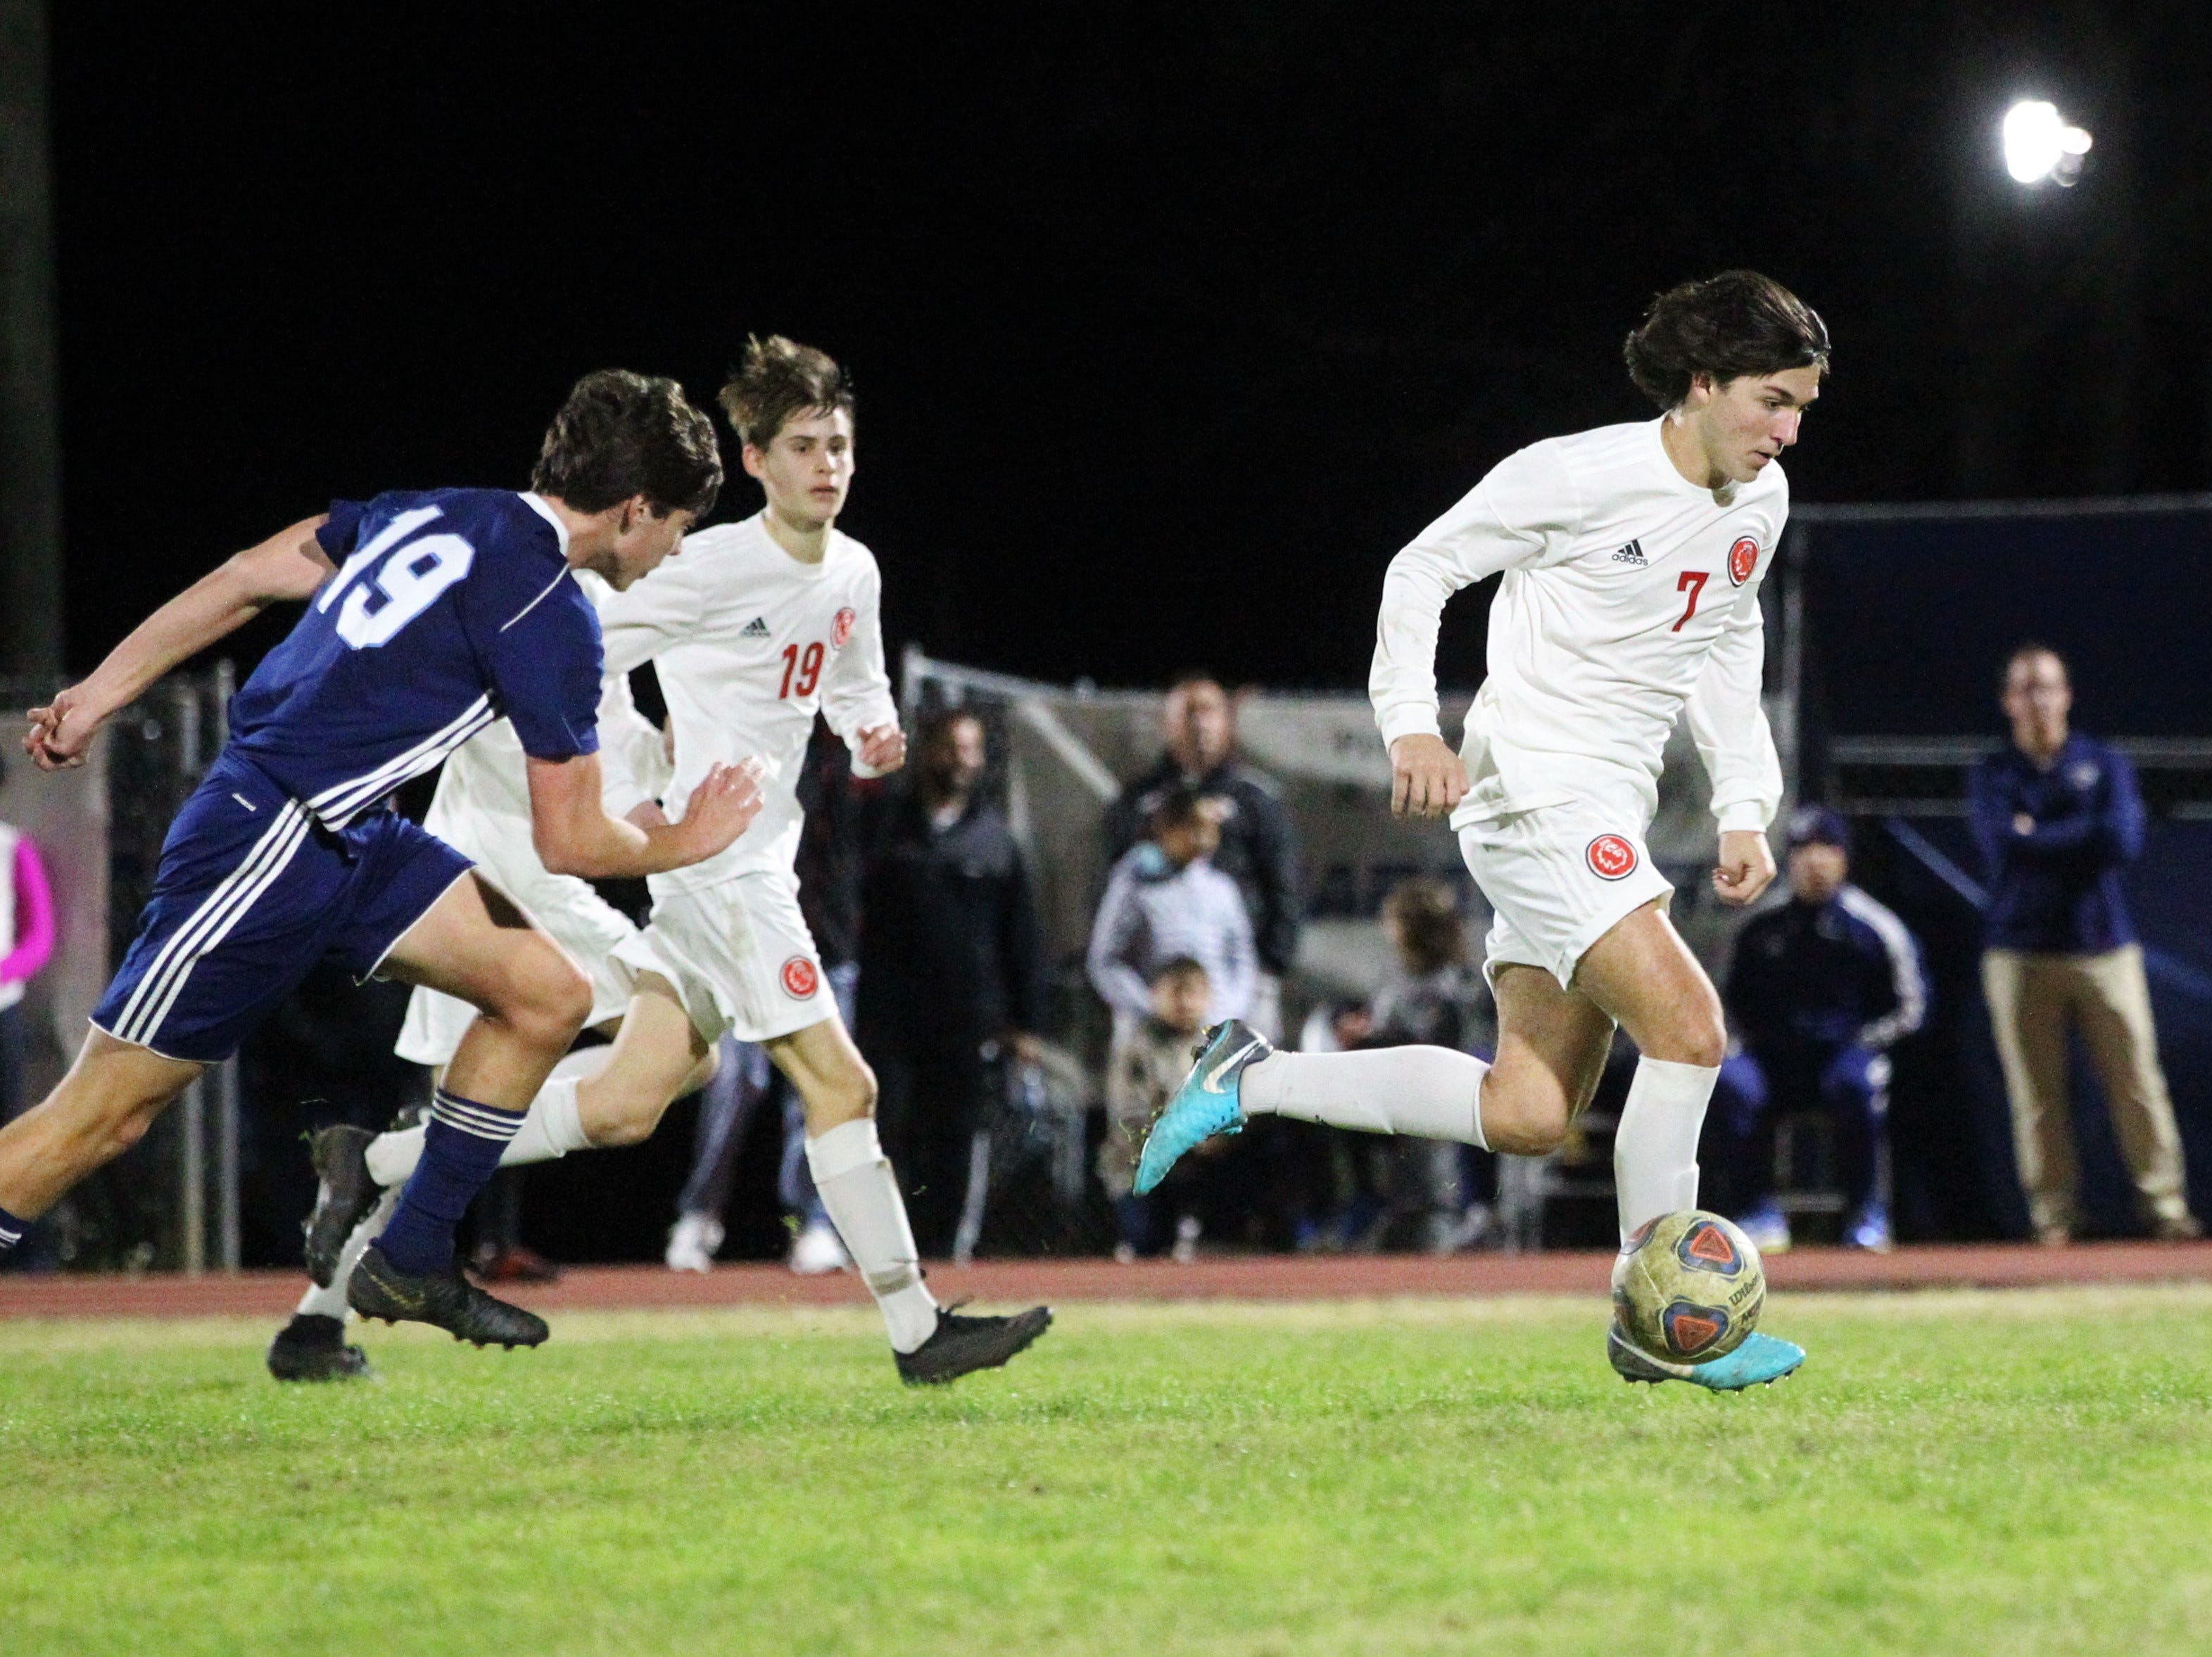 Leon's Henry Regalado dribbles through the midfield as  Leon's boys soccer team beat Maclay 3-1 on Jan. 22, 2019.